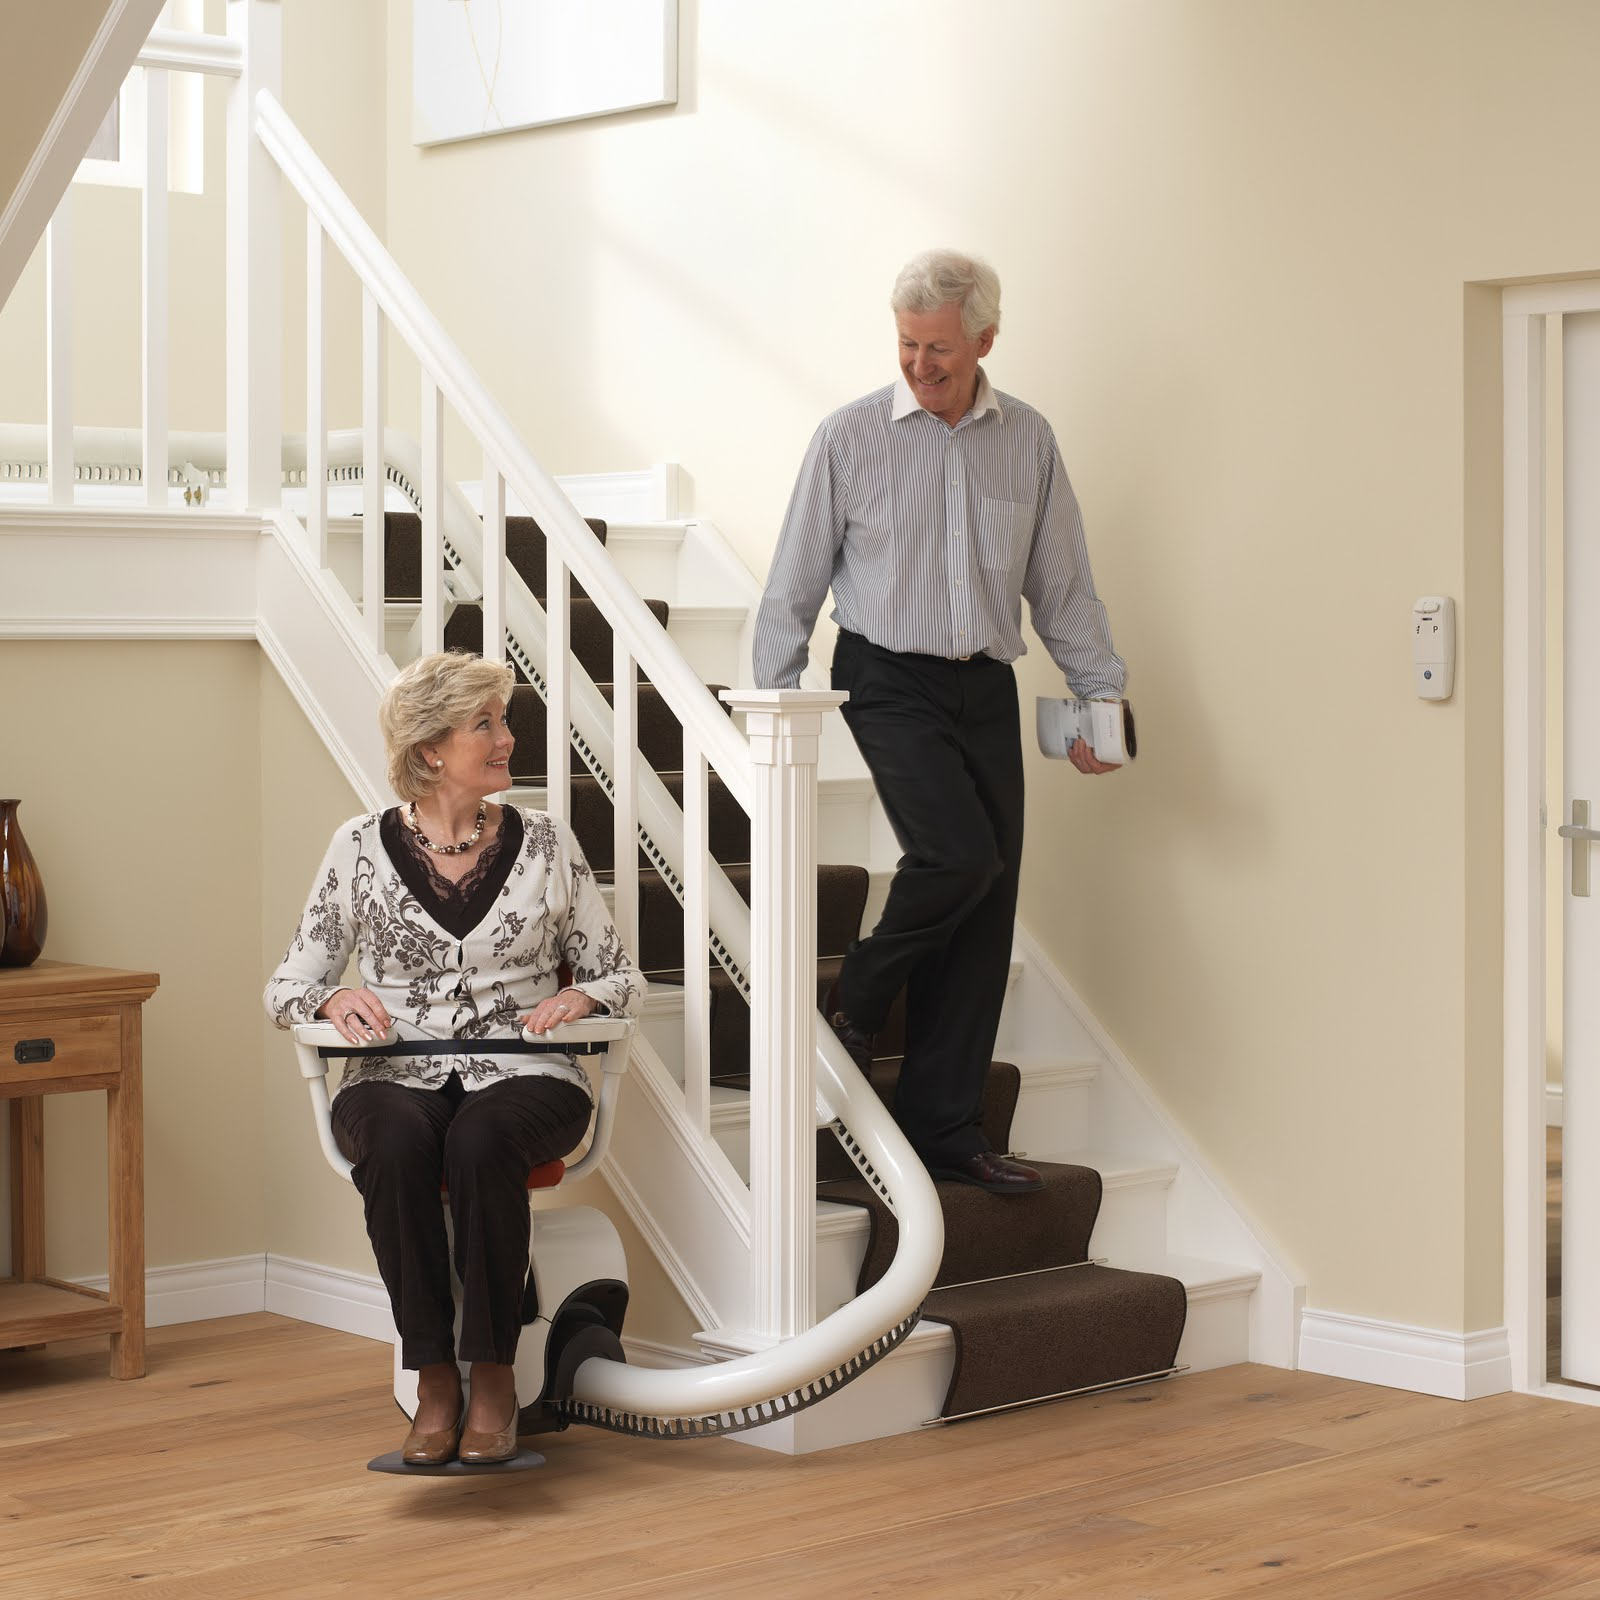 Treppenlift Flow 2 Manual Stair Lifts: Flow Stairlifts For Curved Stairs